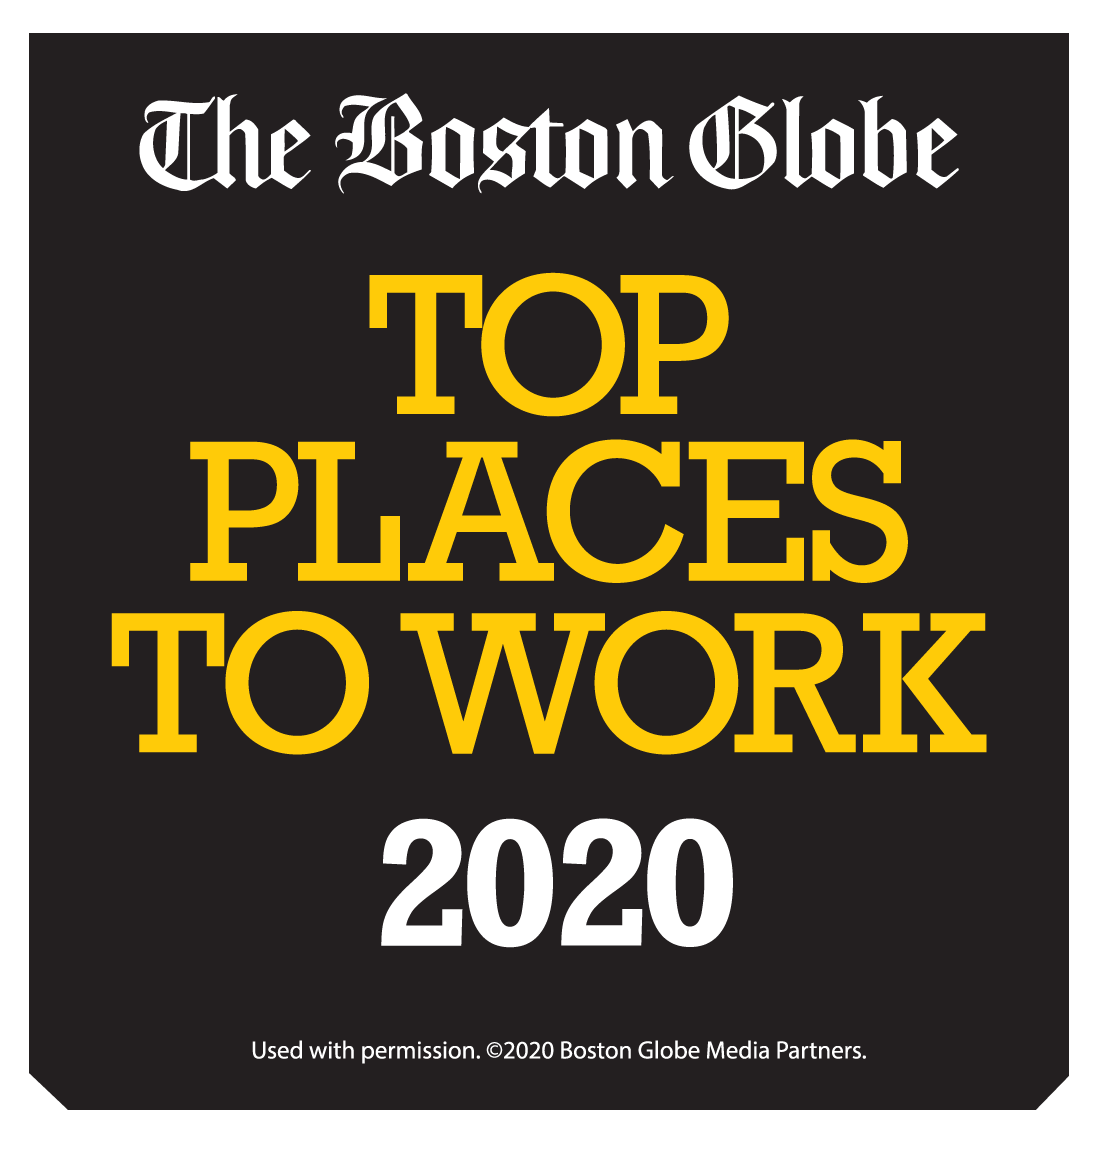 The Boston Globe Top place to work 2020 badge